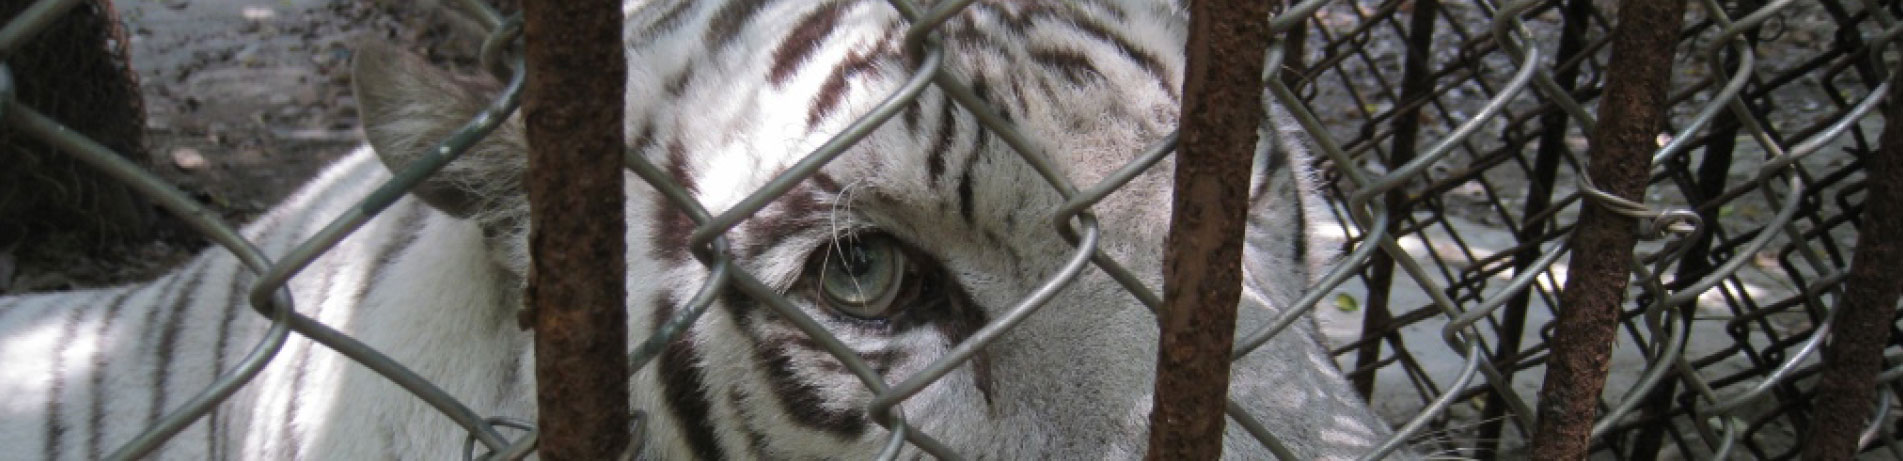 Close-up image of captive tiger behind a fence, Gulin, China